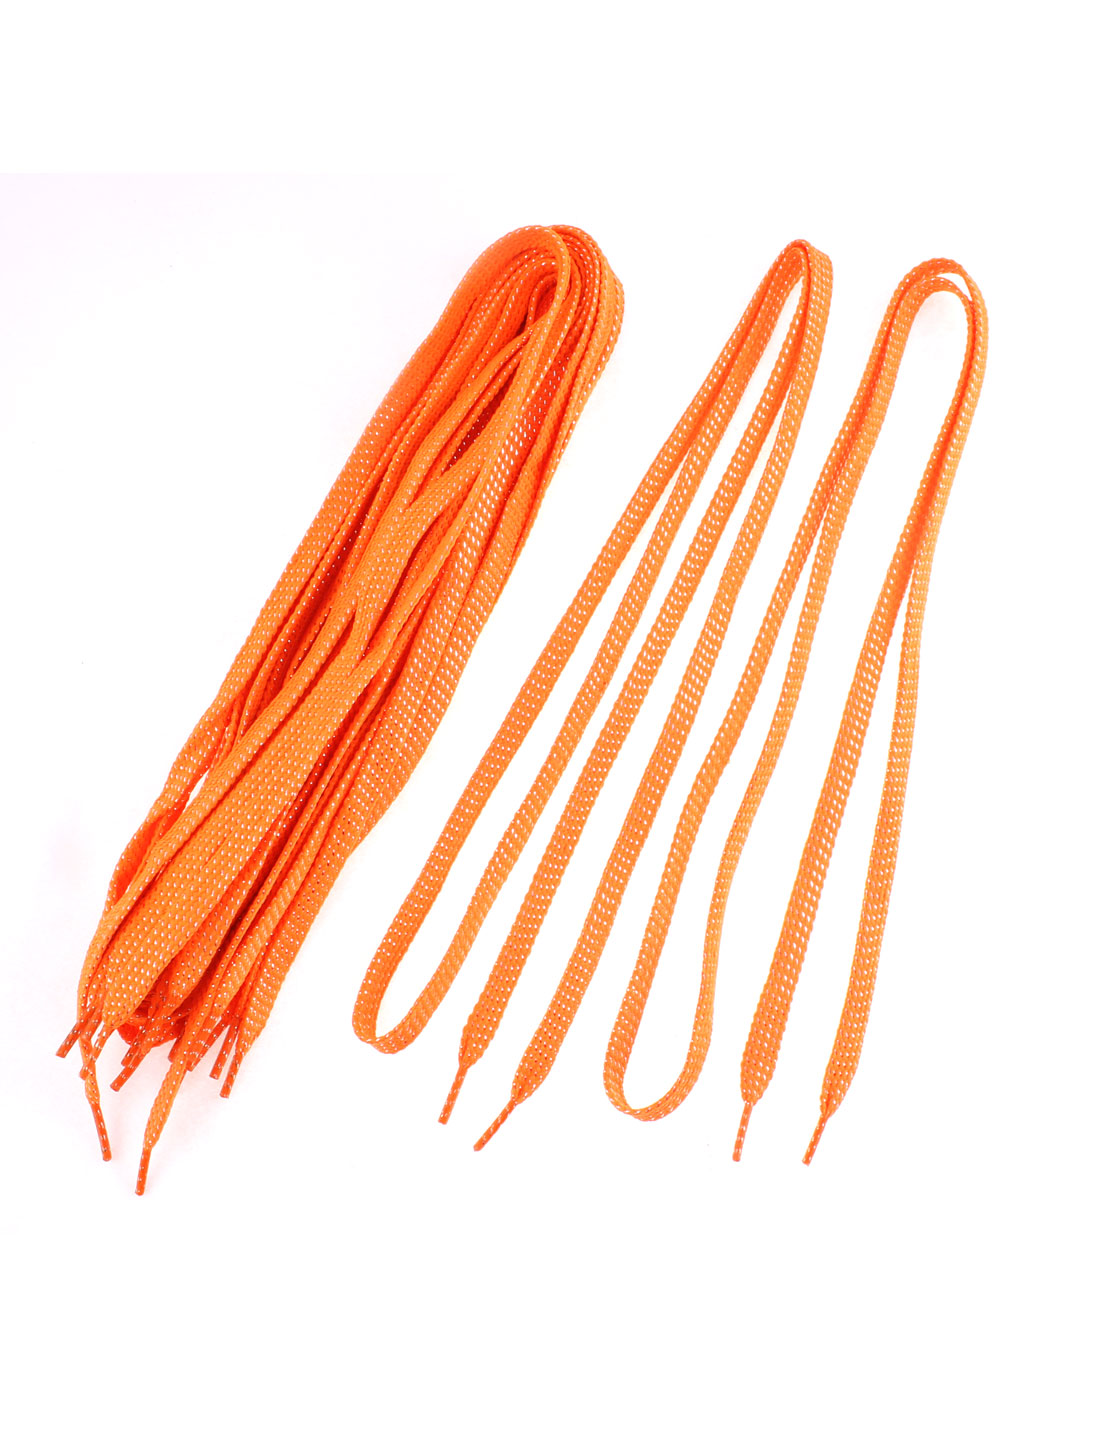 Sneakers Leisure Shoes Cotton Blend Flat Shoestring Shoelaces Orangered 5 Pairs